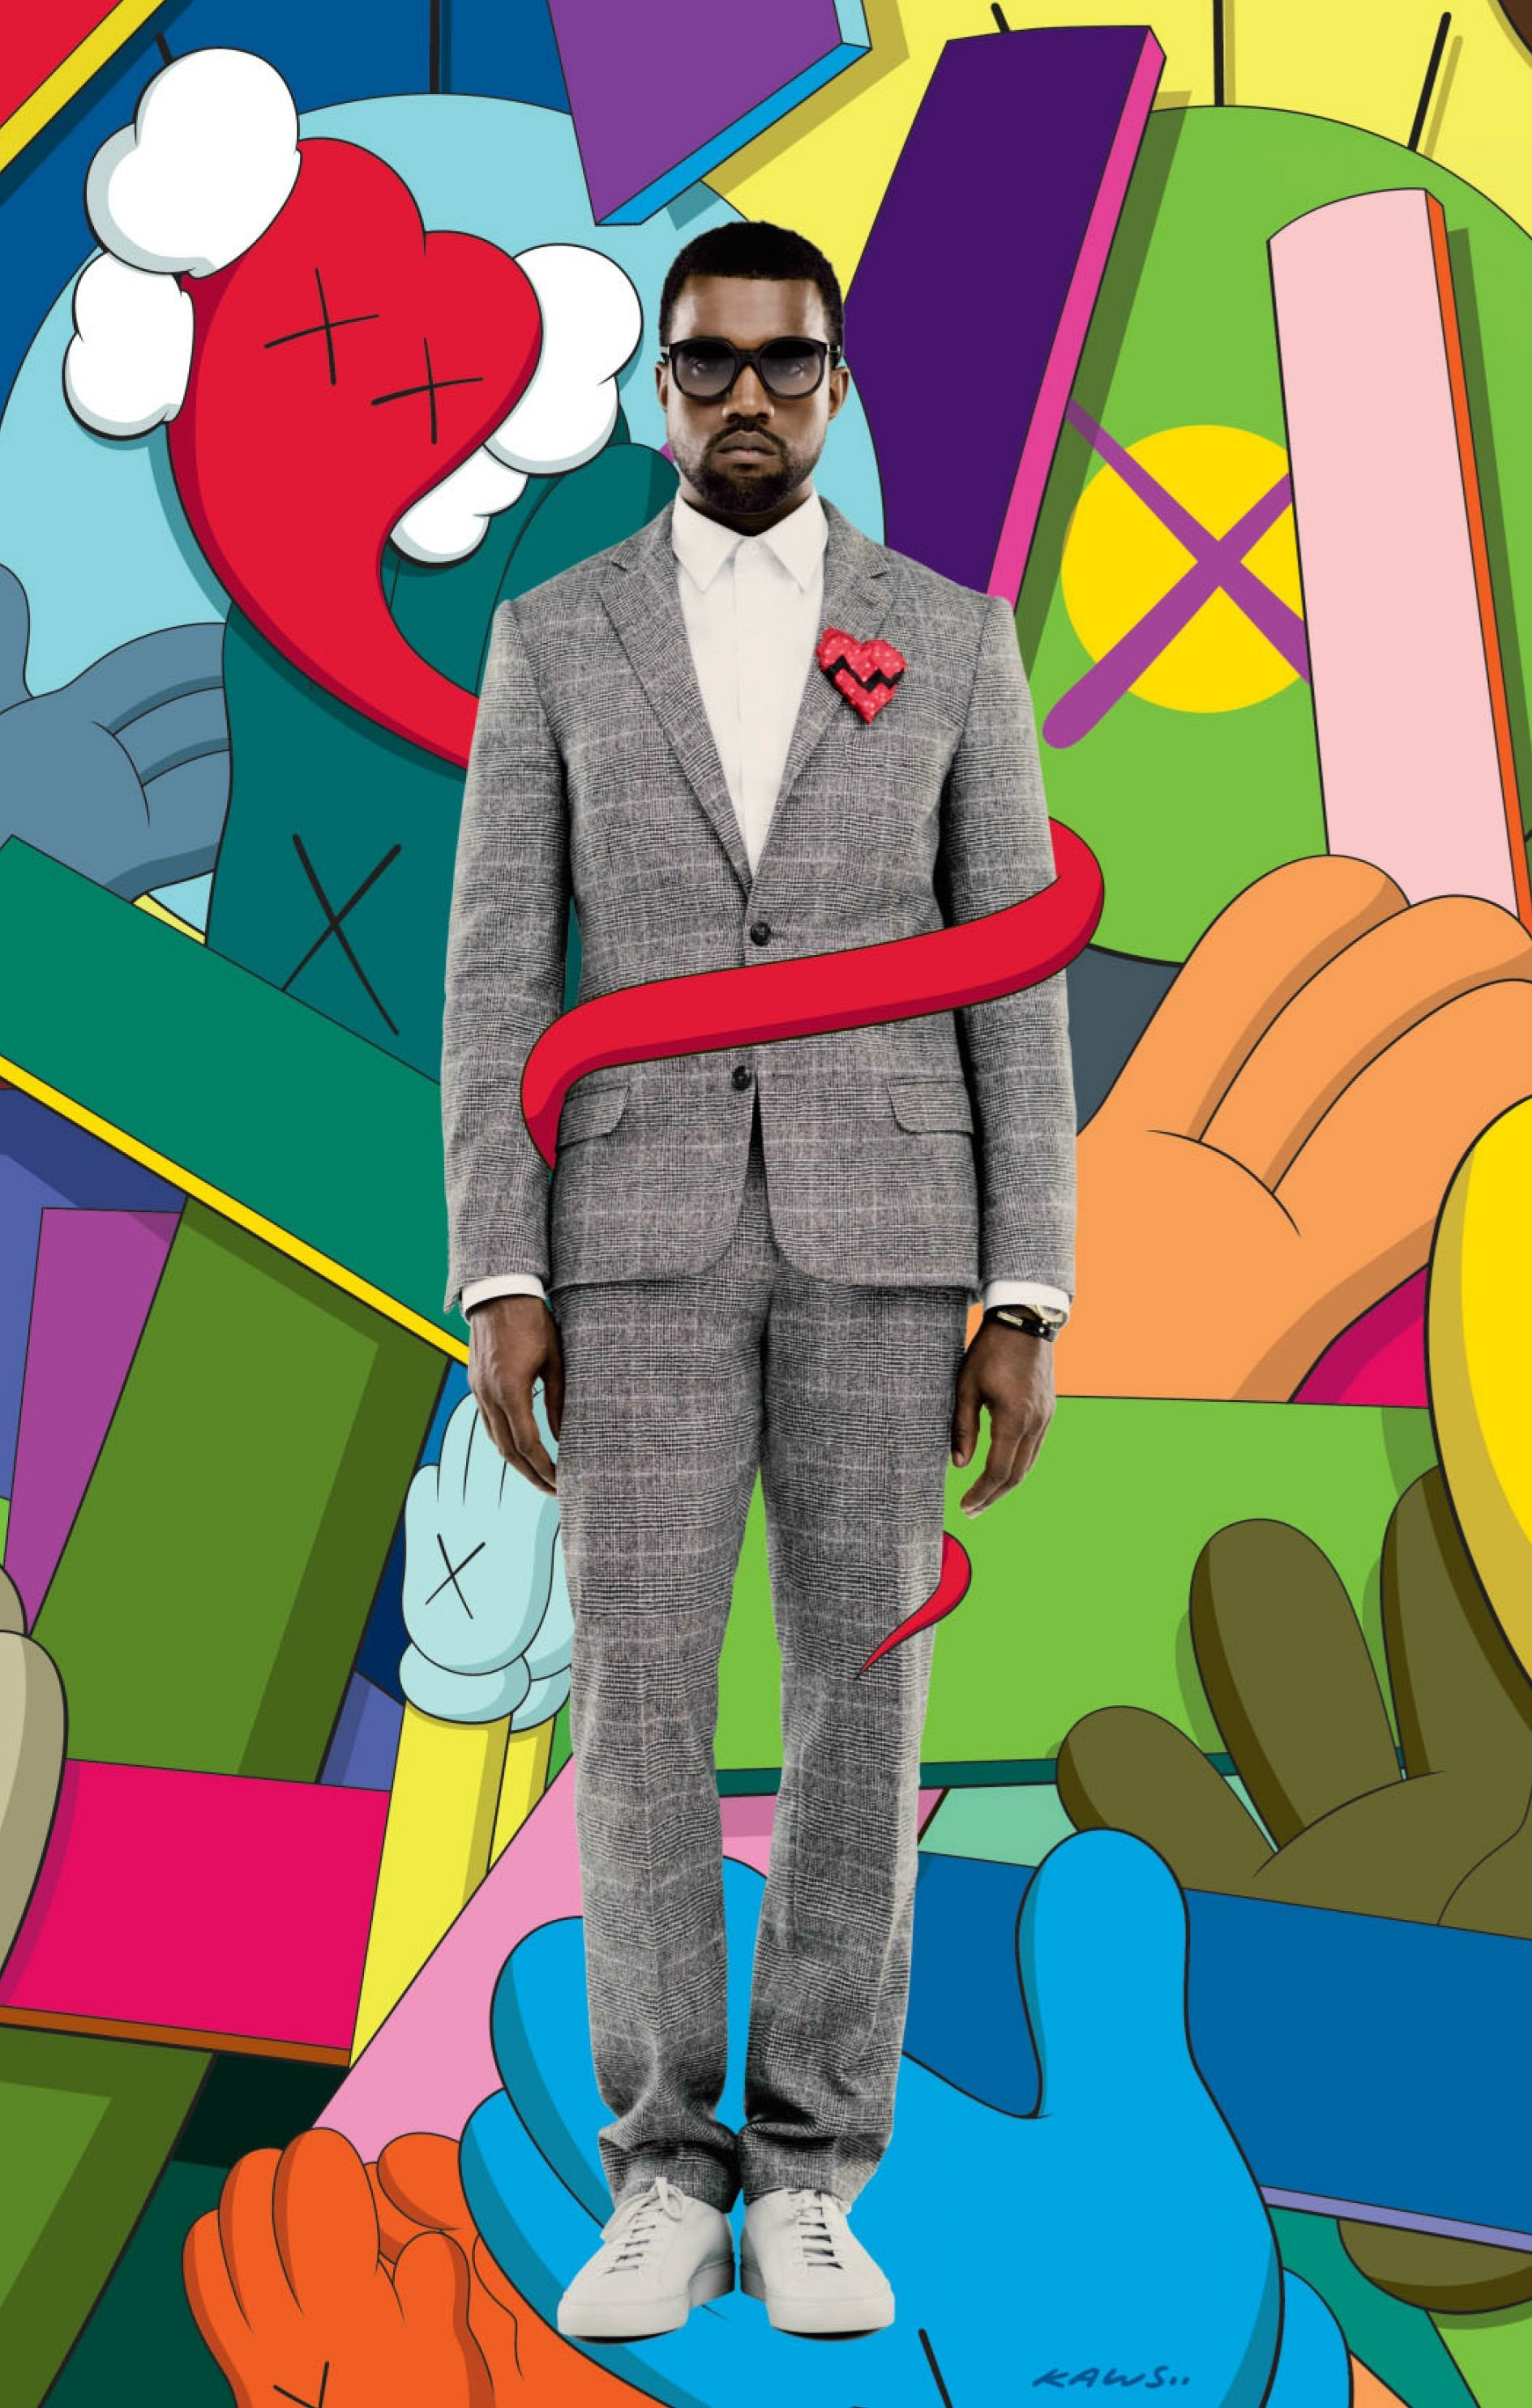 [iPHONE 6+ (also fits well for 6)][KANYE WEST] 808s & Heartbreak